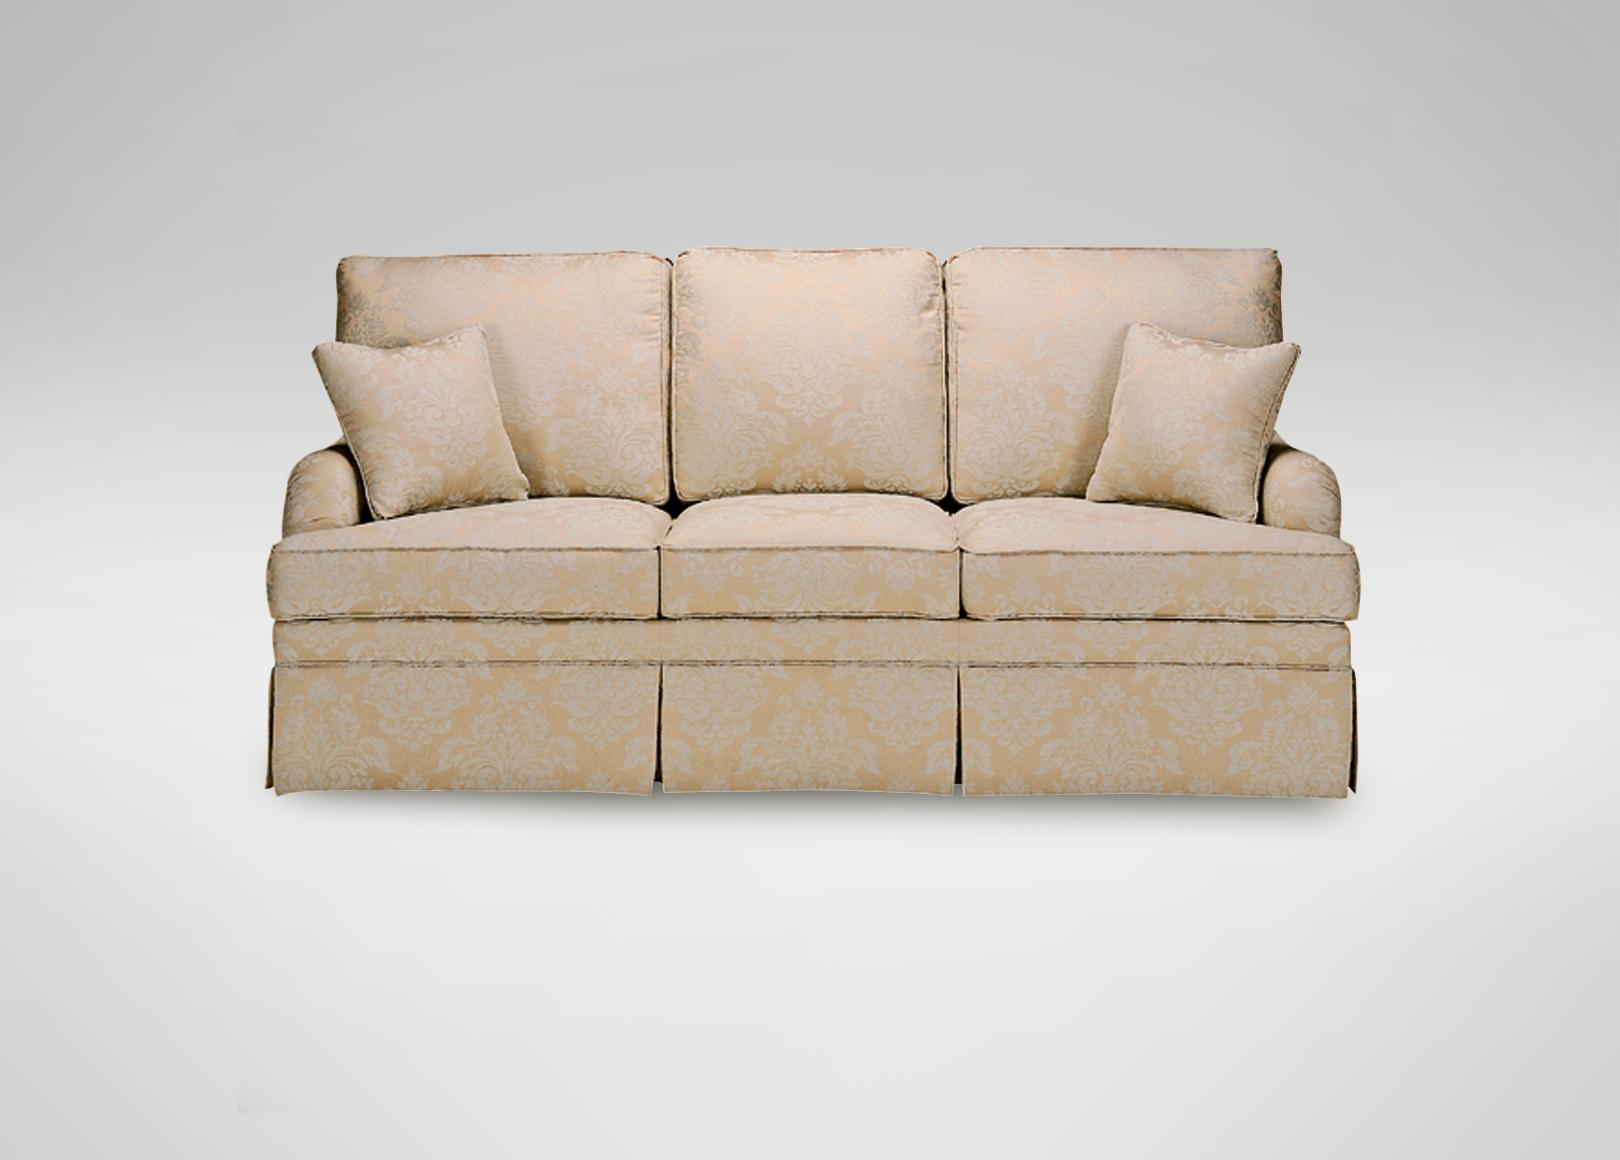 20 choices of ethan allen whitney sofas sofa ideas for Sectional sofa bed ethan allen